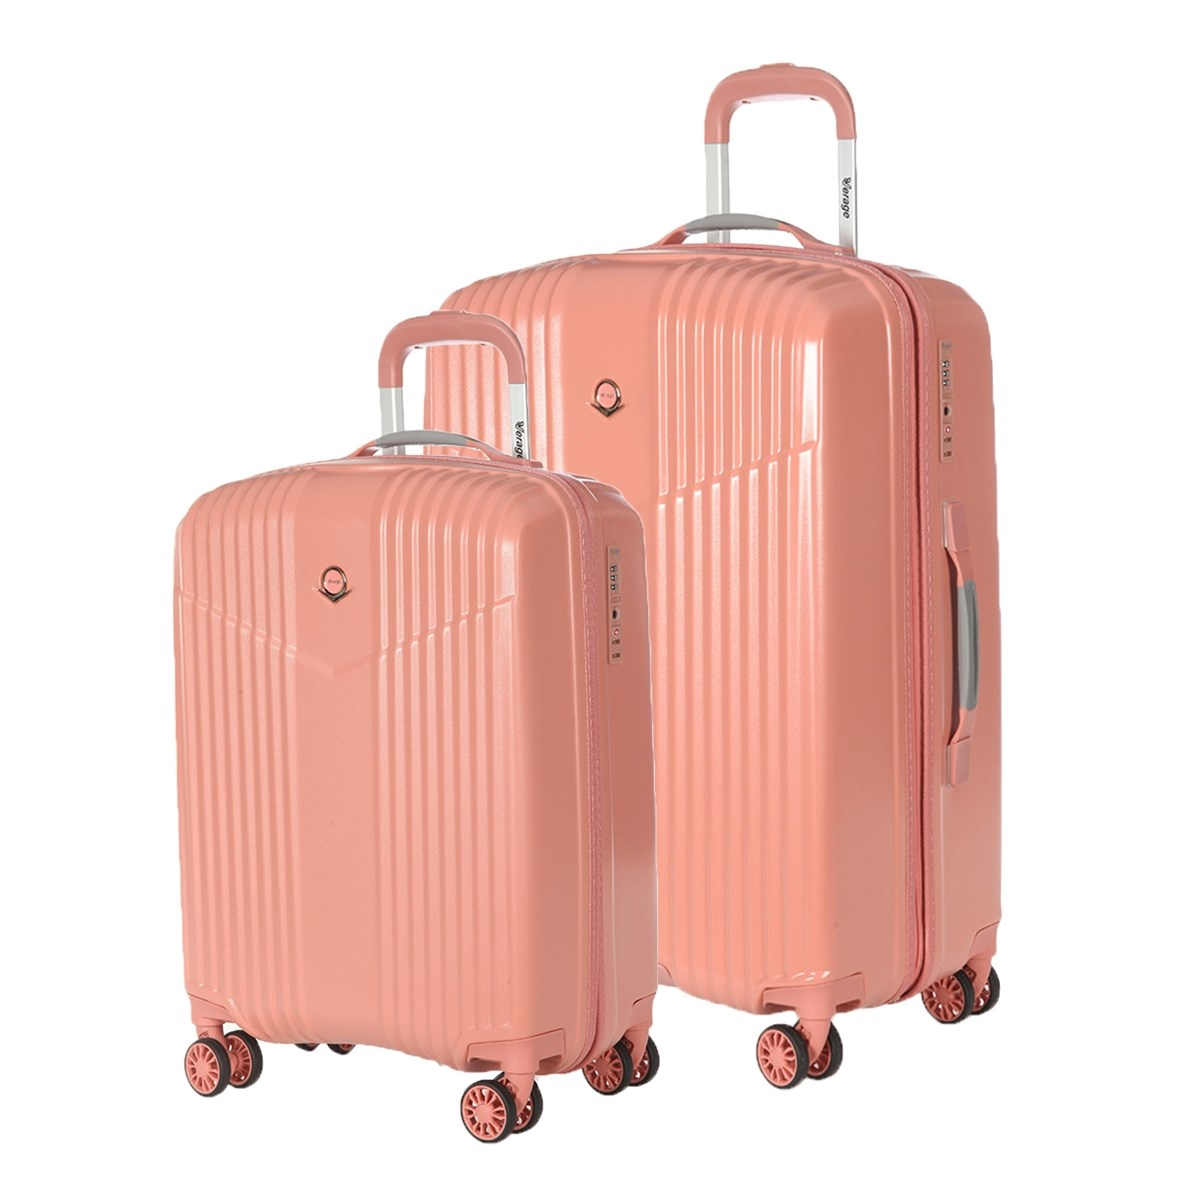 Set Suitcases Verage GM17072W 19/24 coral pink 3pcs soft coral fleece sunflower bath mats set